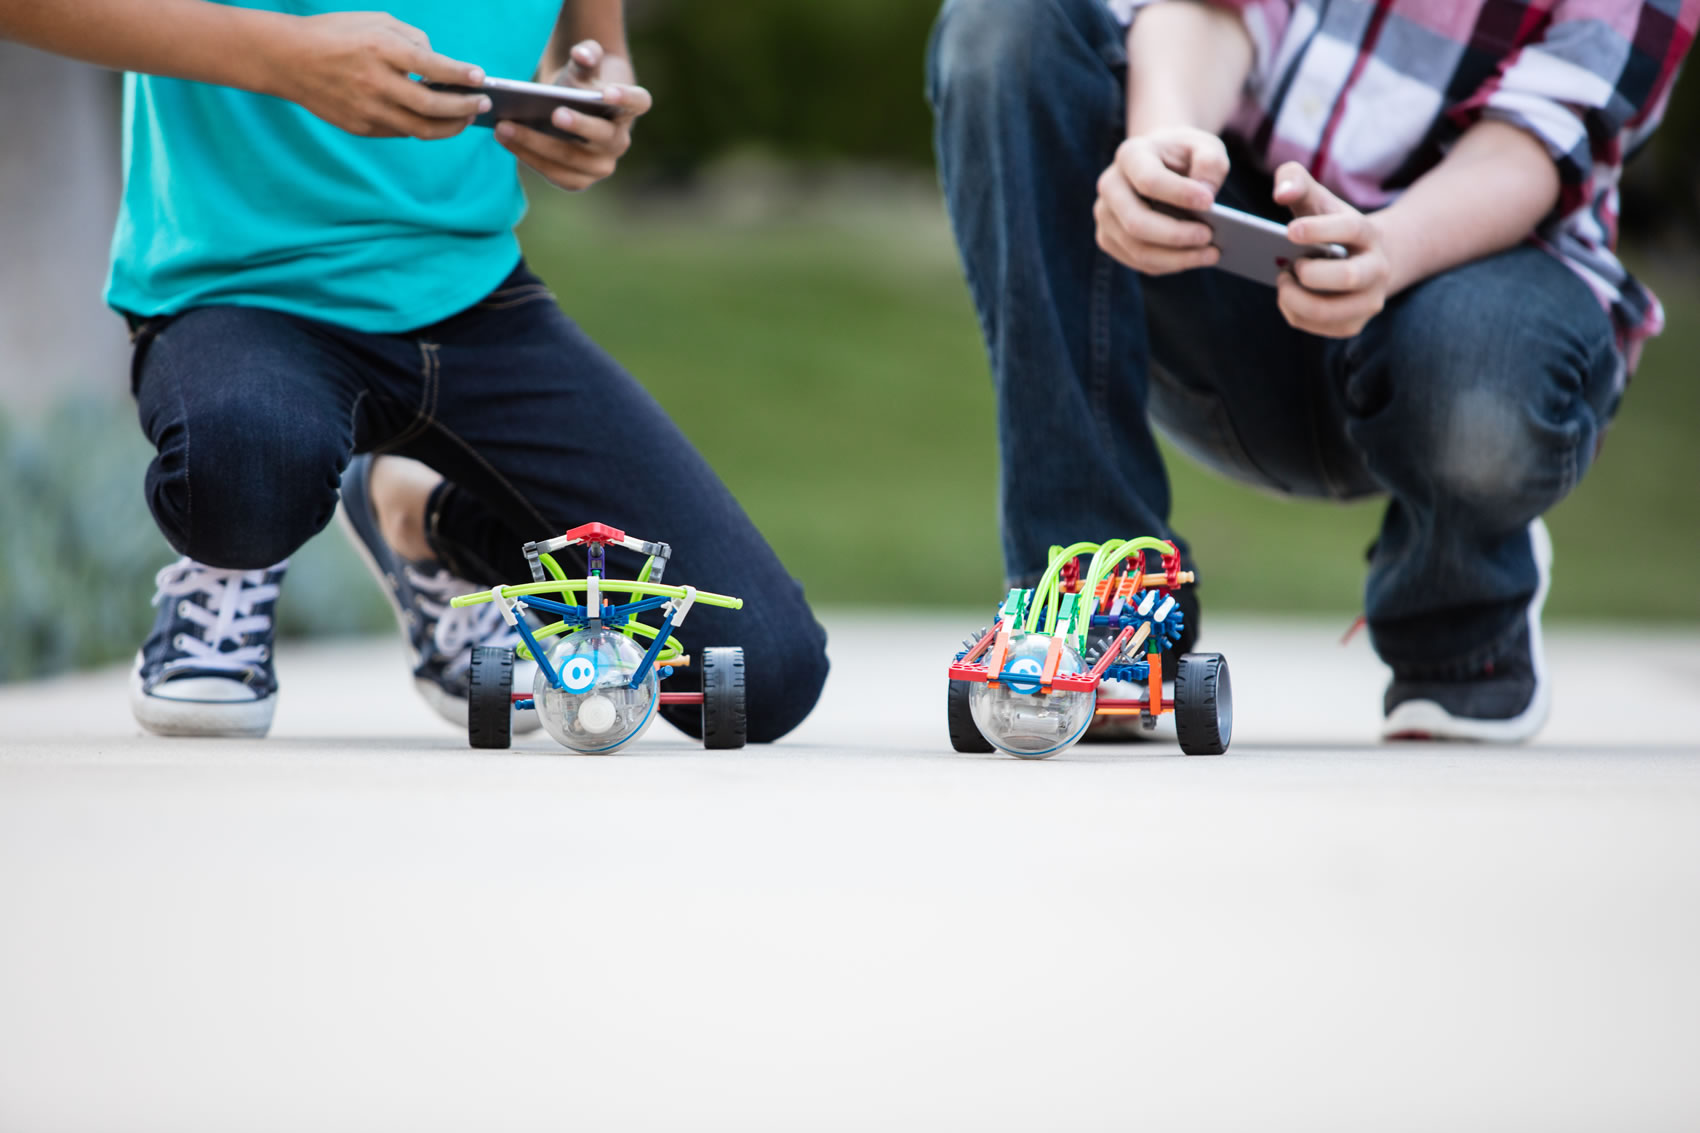 Bringing home the 'NOW' generation of Robotics - Sphero's SPRK+ - image courtesy Sphero